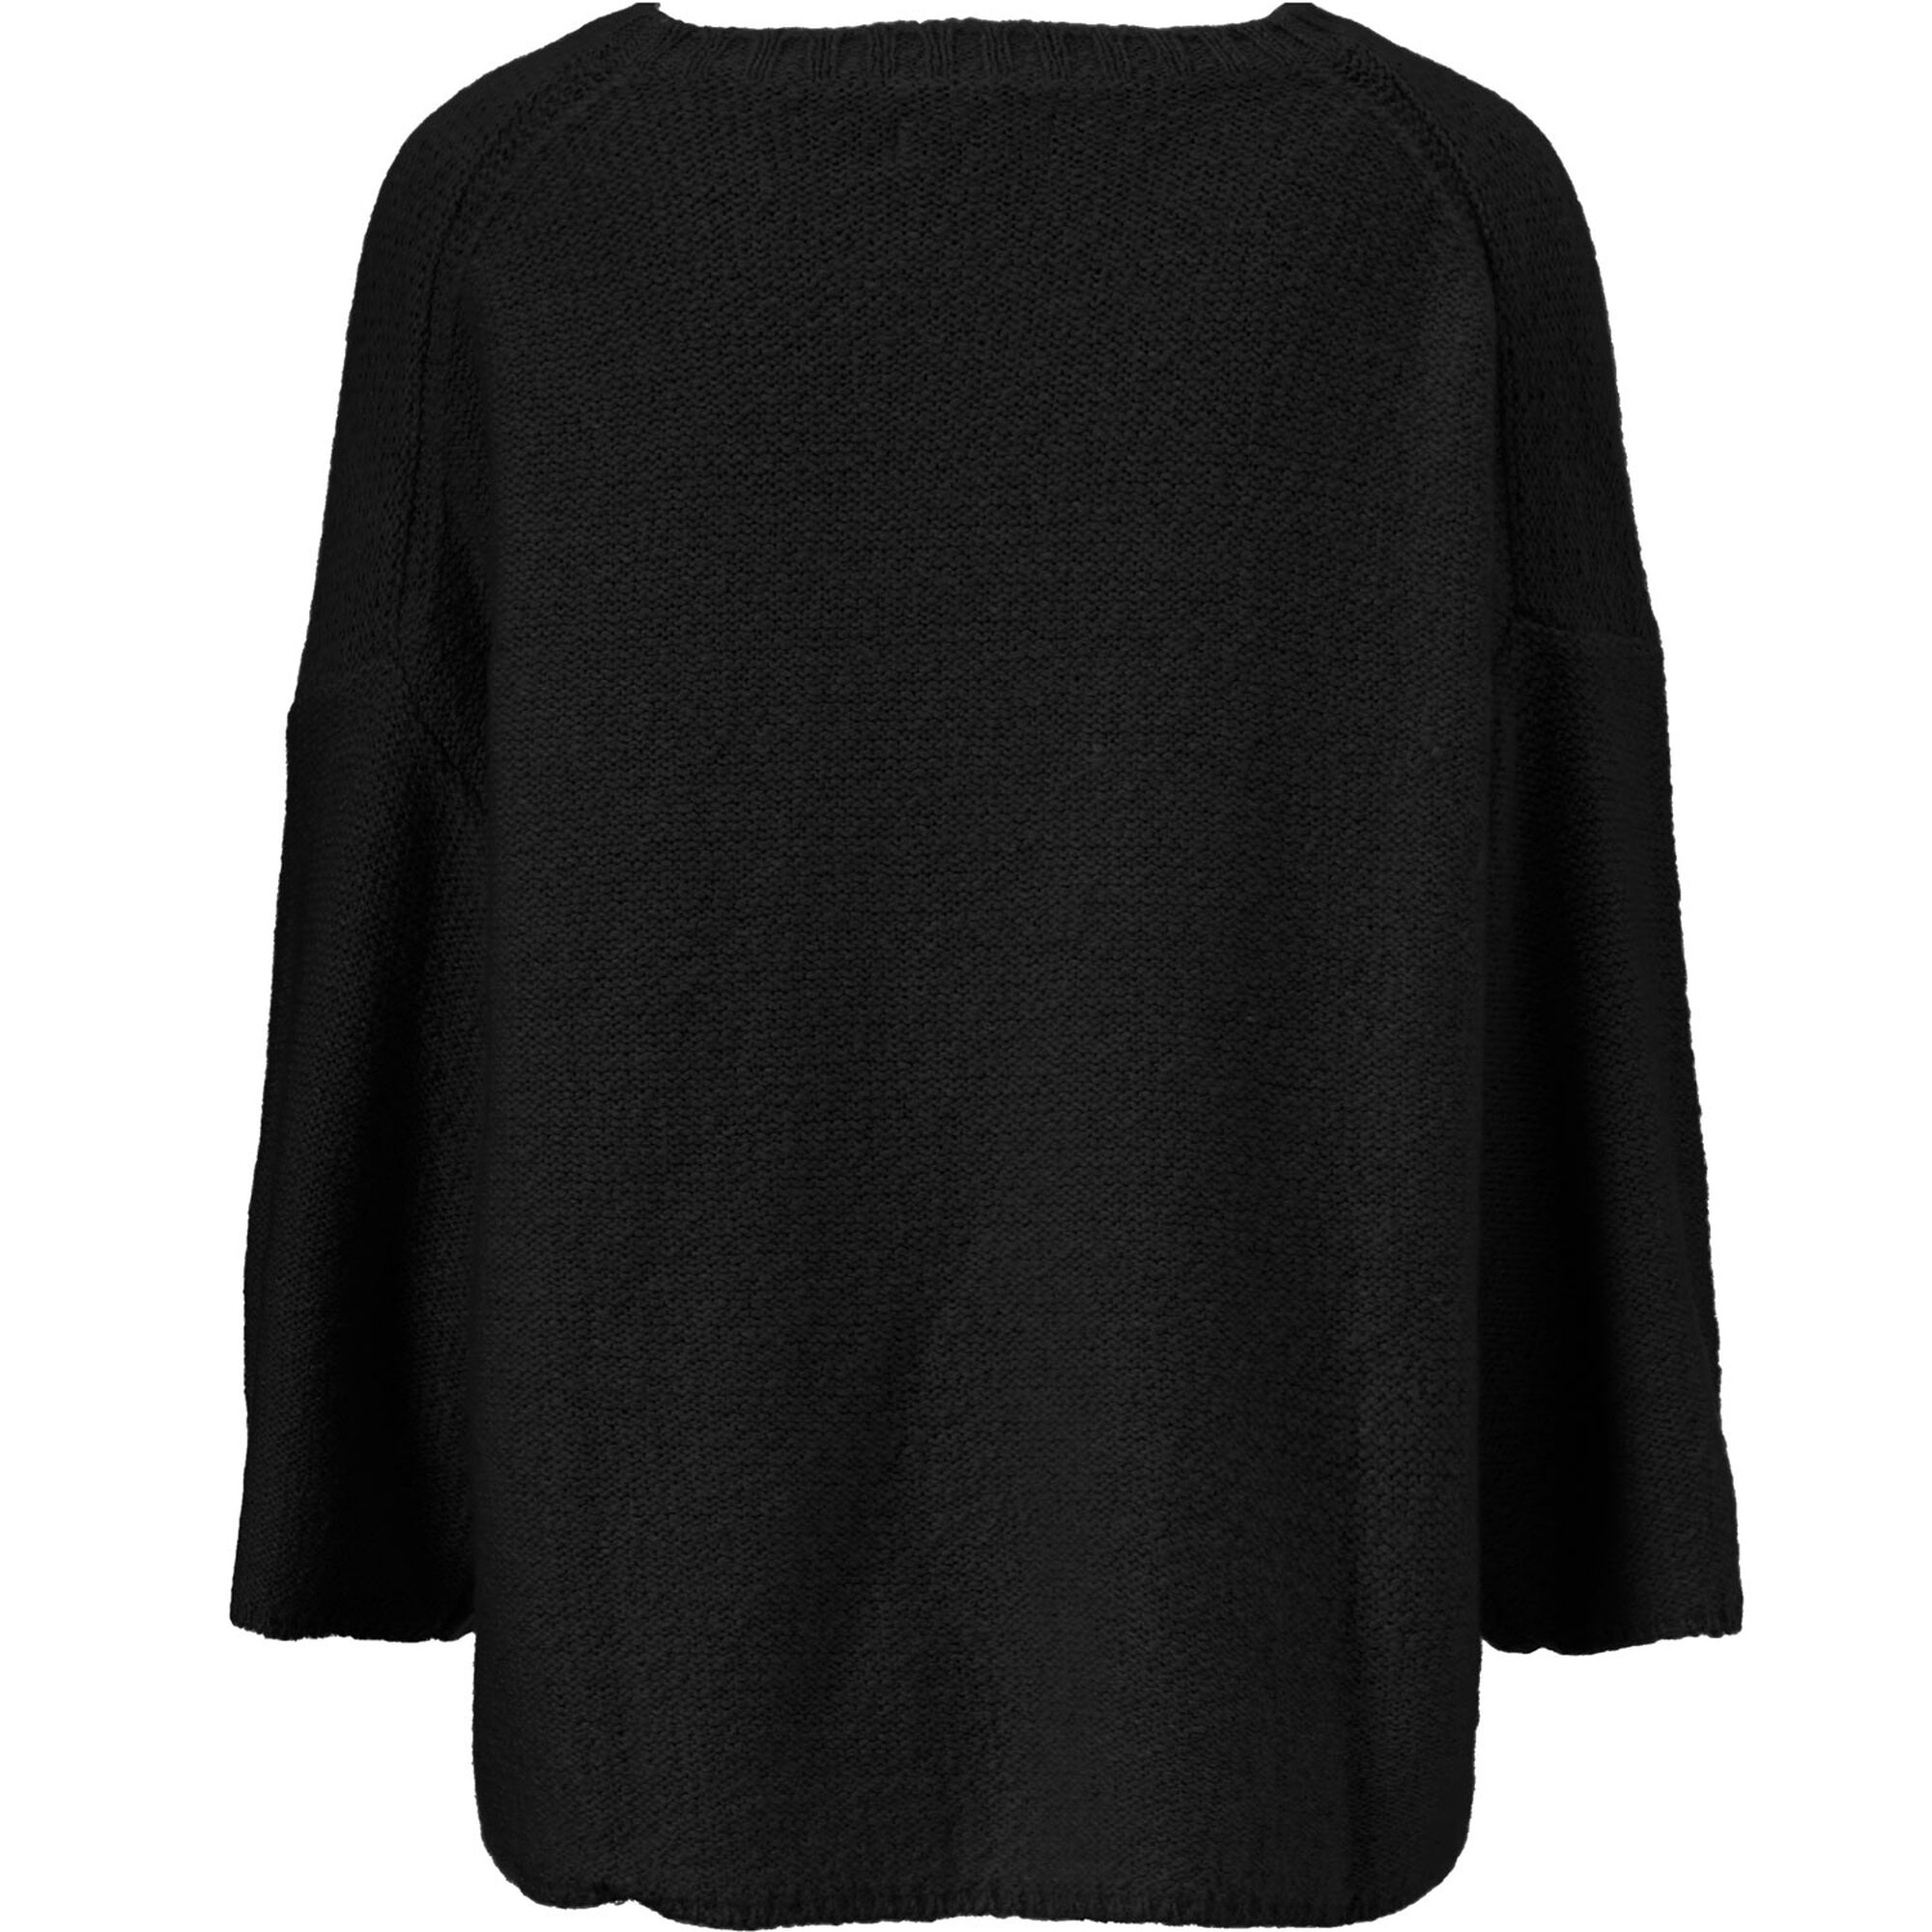 FUSINI TOP, Black, hi-res